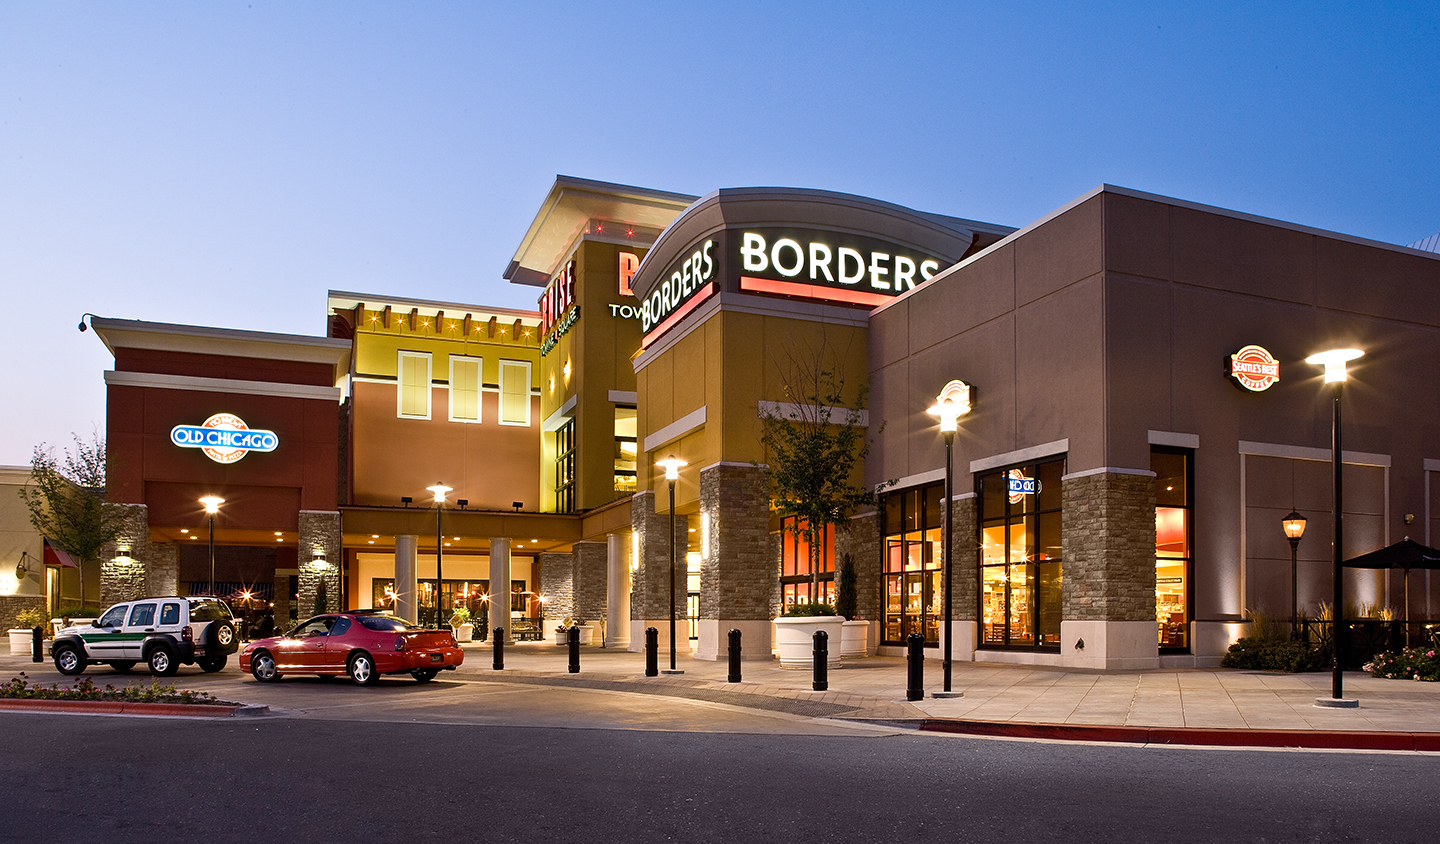 Boise Towne Square is a mall in the western United States, located in Boise, Idaho. The largest retail complex in the state, it opened in after more than 20 years of planning, and features over stores, with Macy's (formerly The Bon Marché), JCPenney, Sears, Kohl's and Dillard's (added in ) as anchor stores.